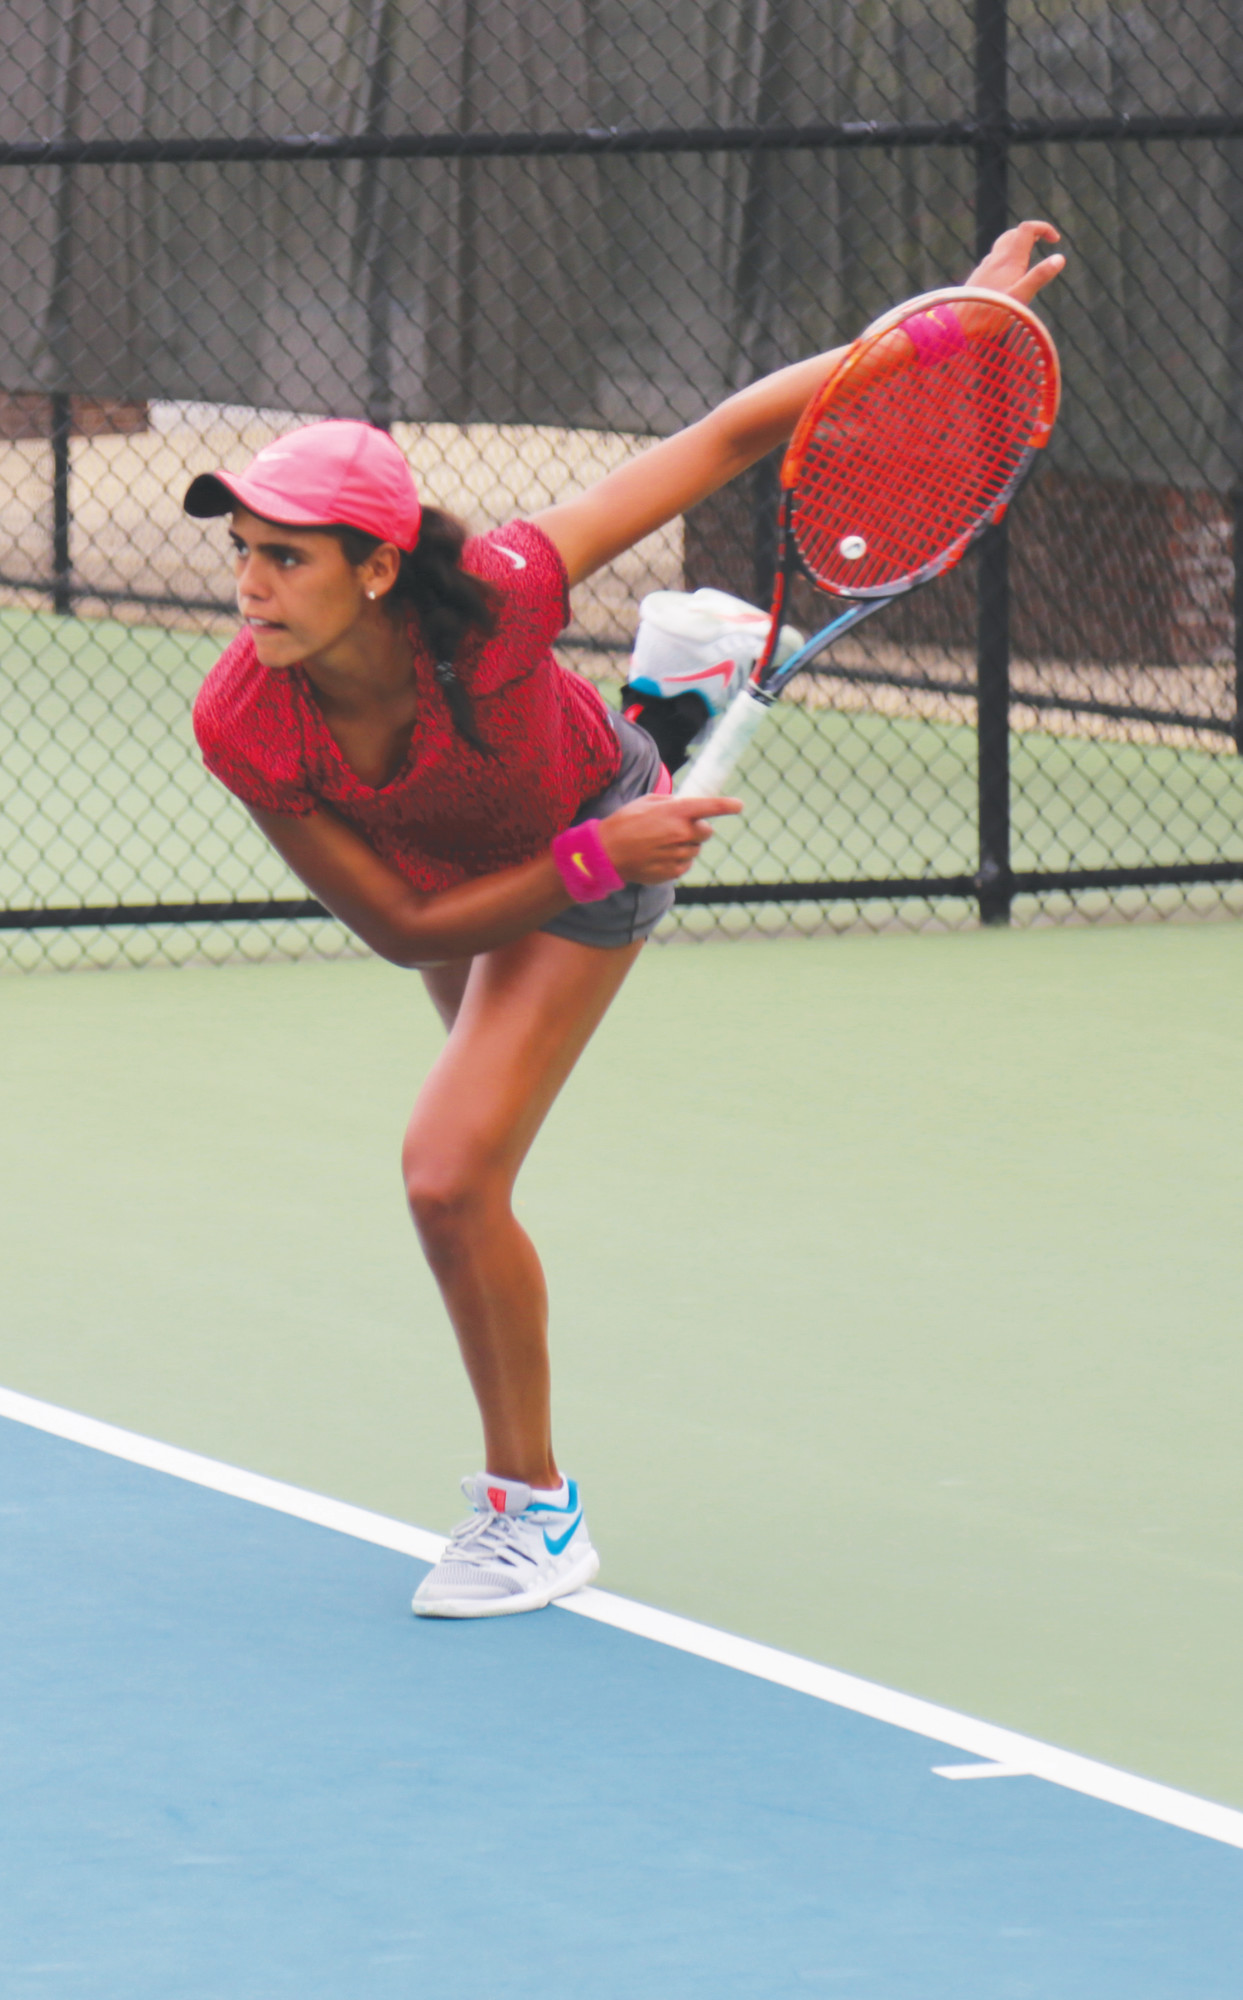 Maria Jose Portillo Ramirez follows through on a serve during her 6-2,